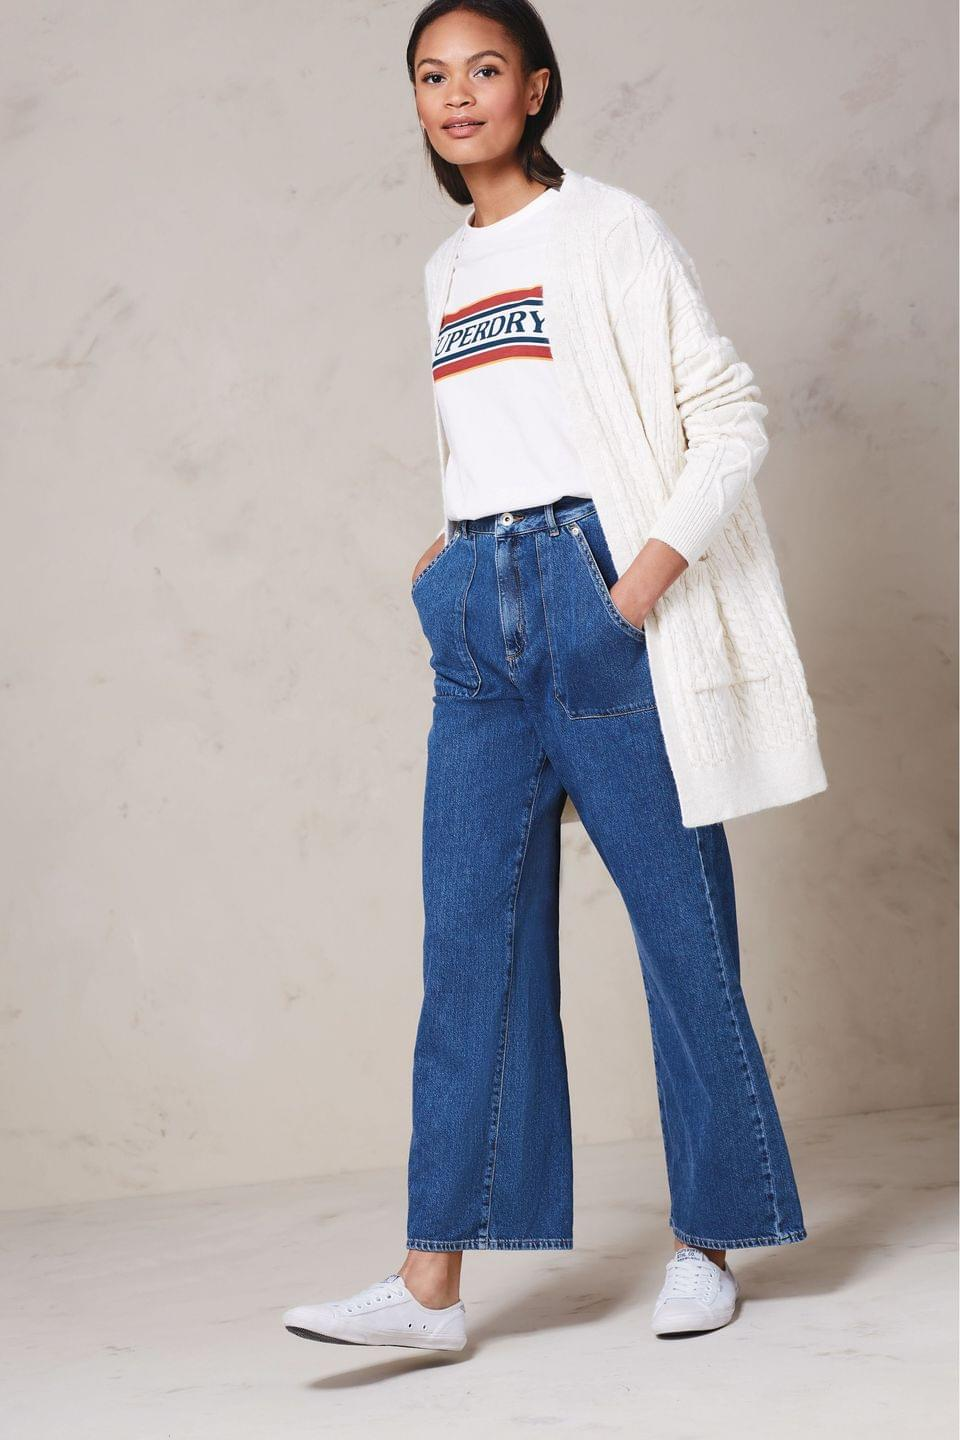 Women's Superdry Blue Wide Leg Jeans